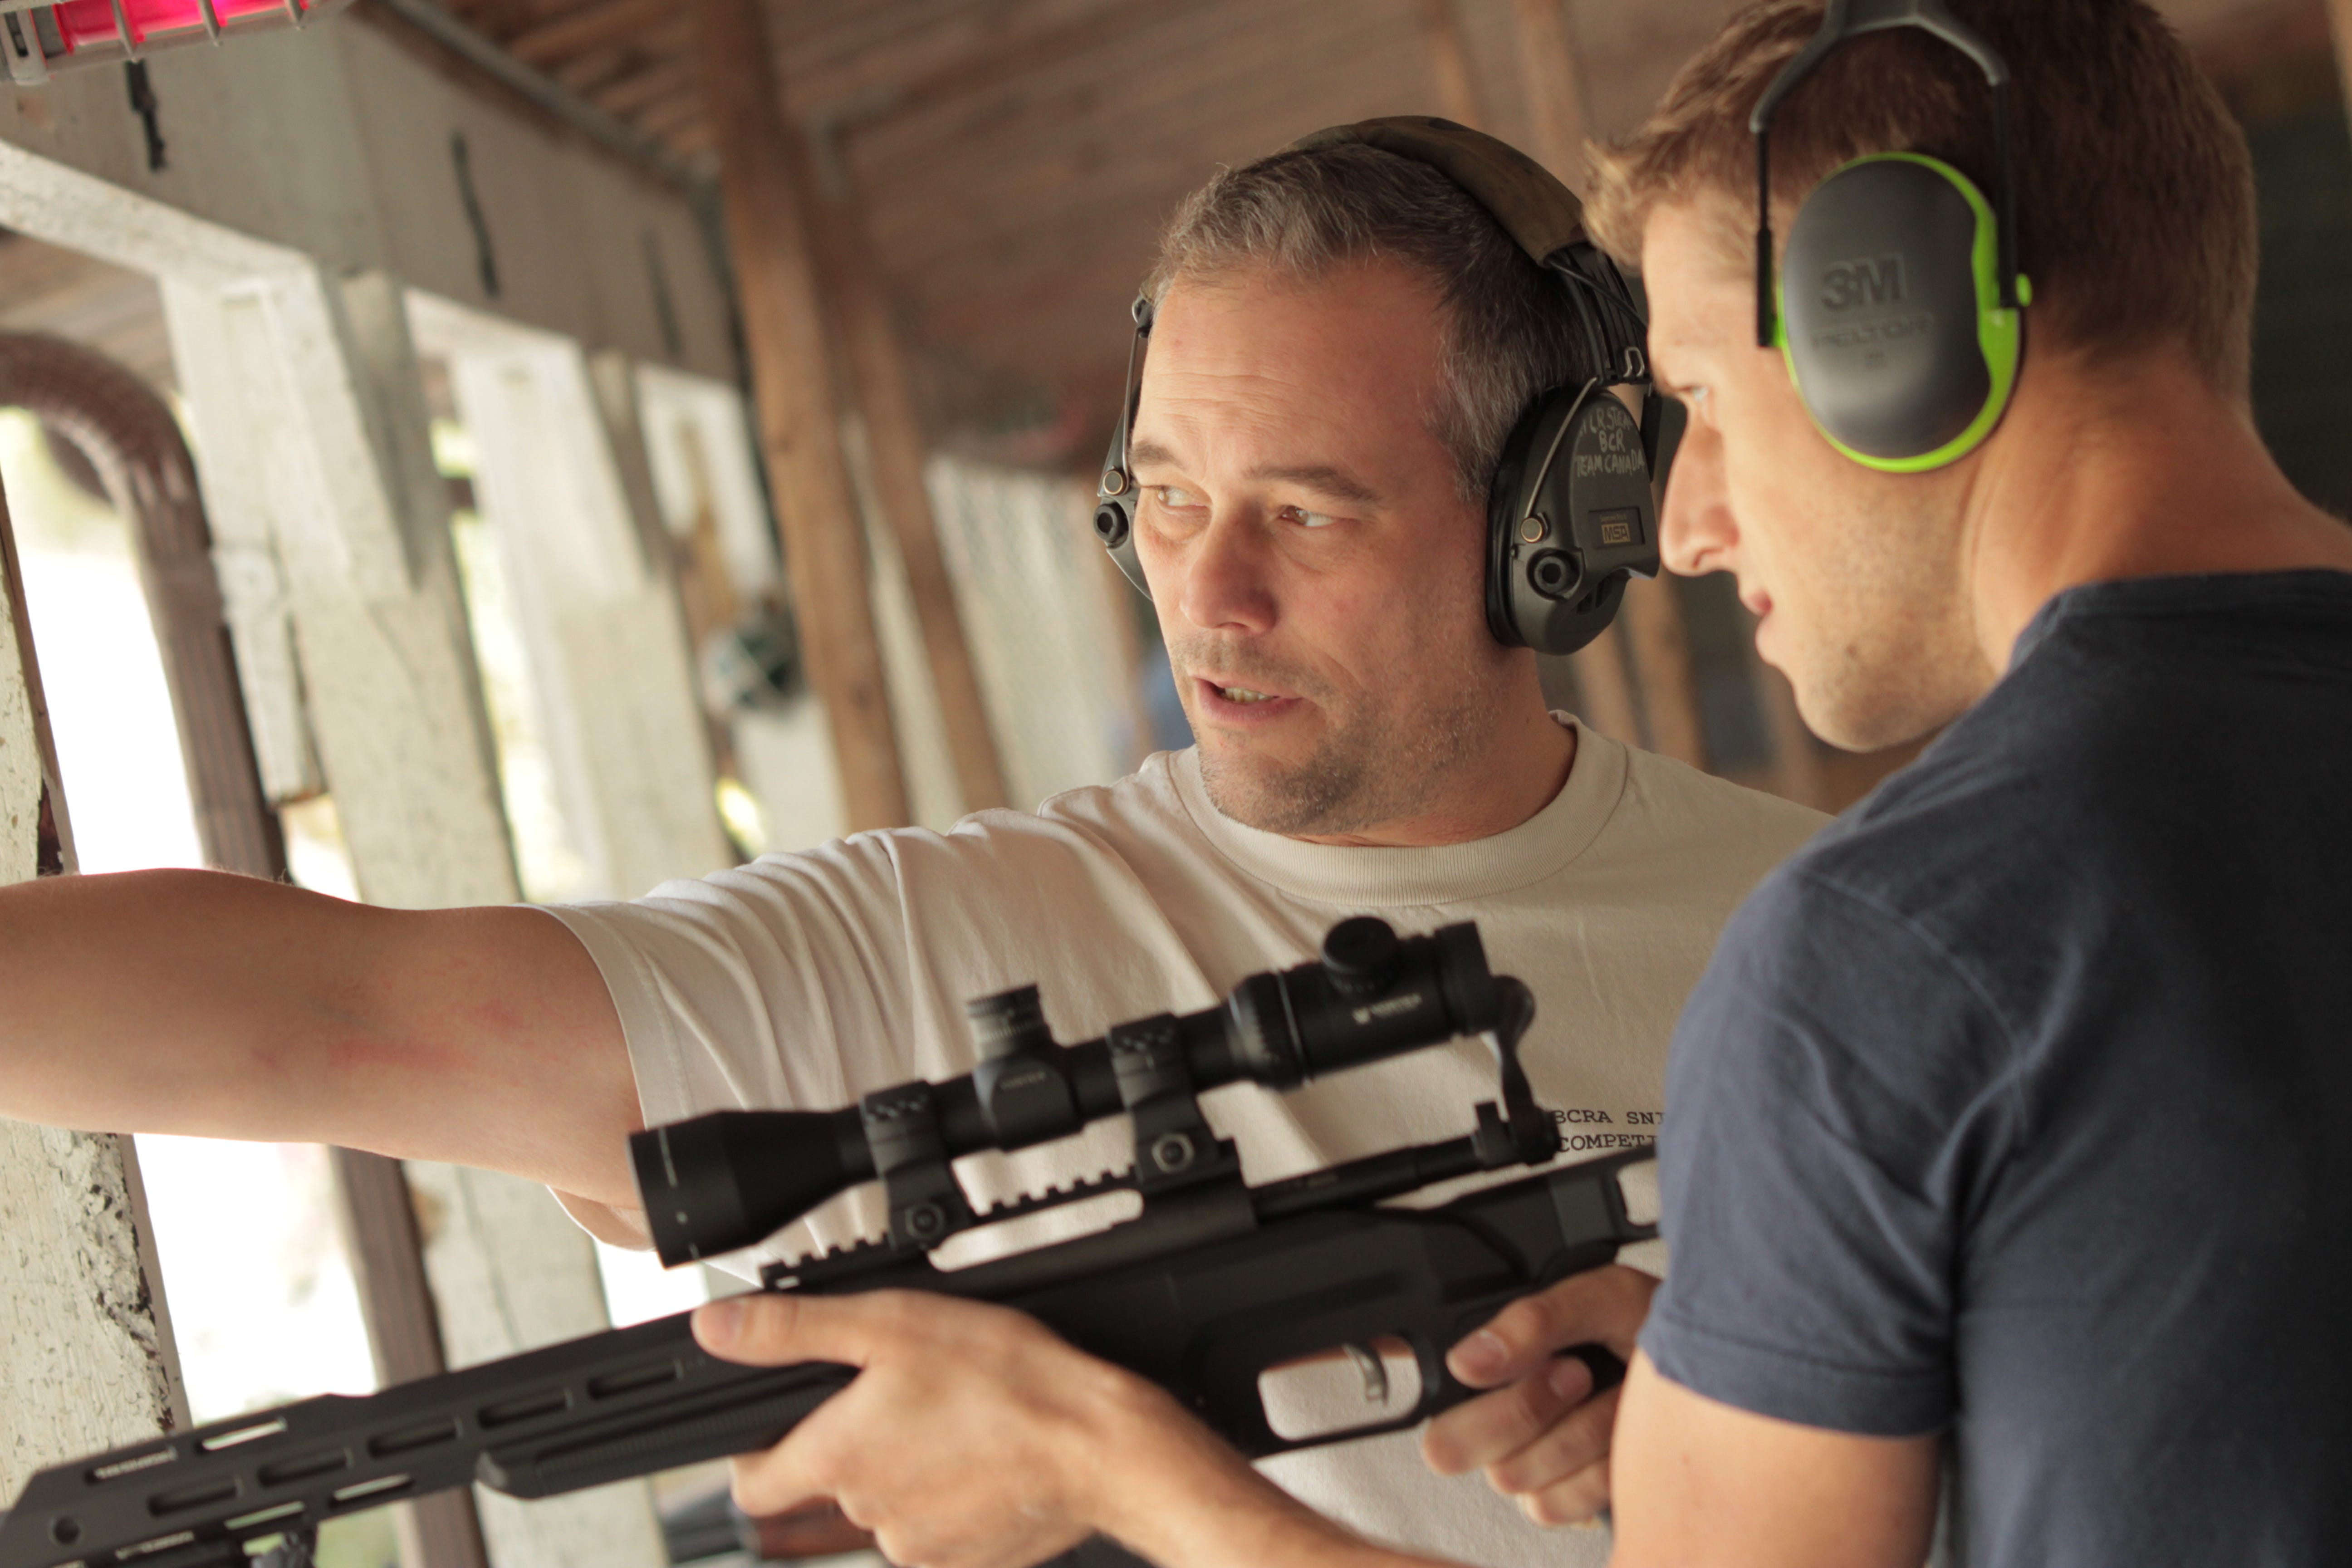 IMPROVING YOUR RIFLE ACCURACY (VIDEO)